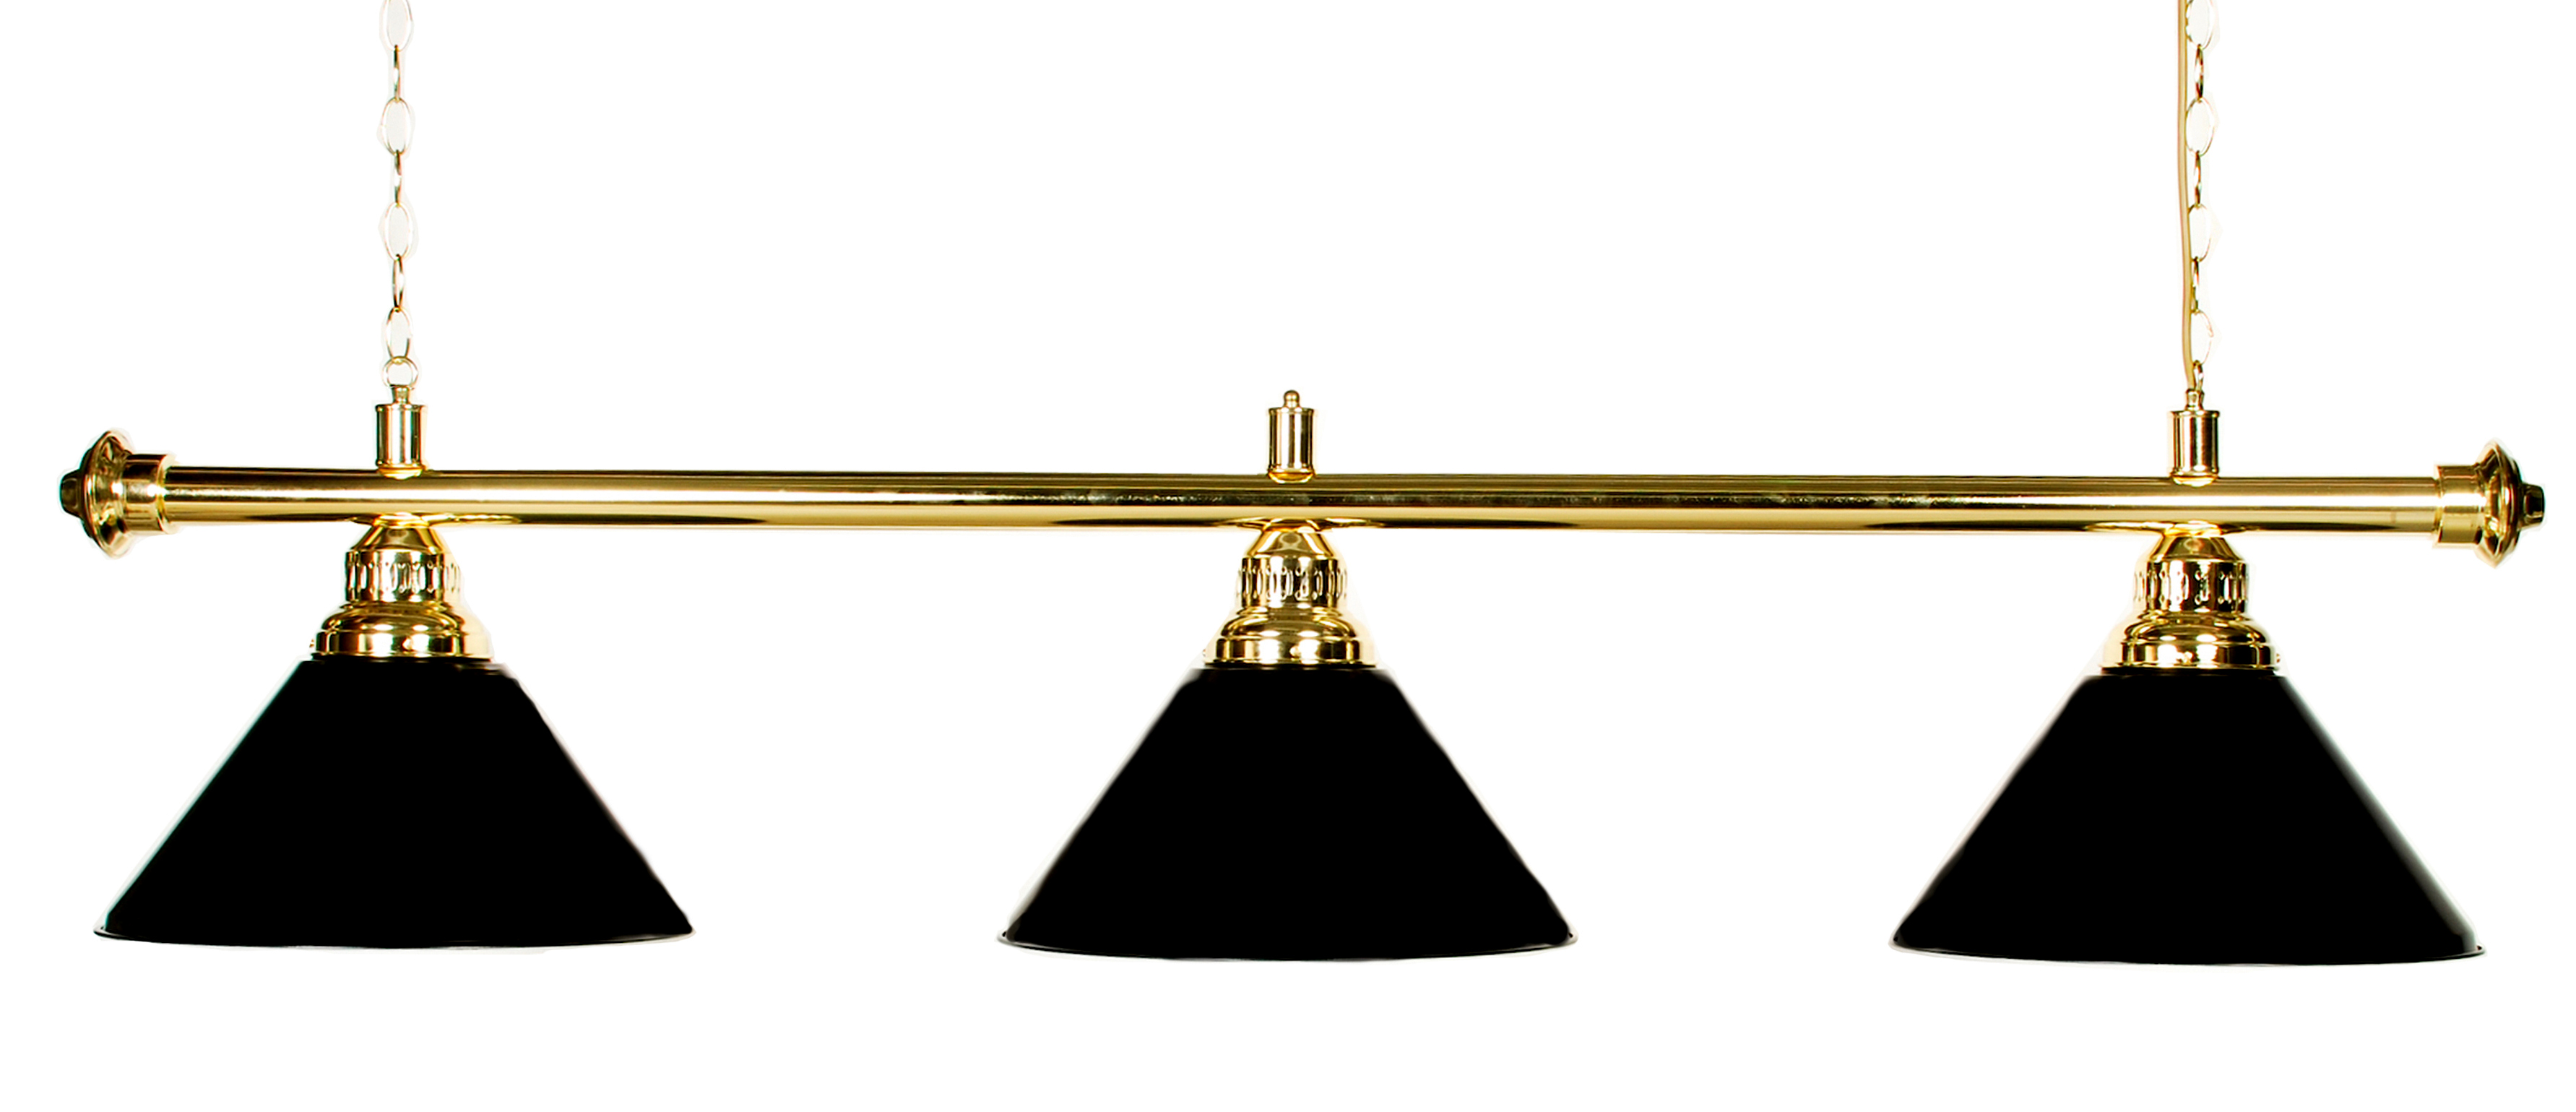 "61"" Pool Table Light Pool Table Light With Metal Black Shades For 7 or 8' Table by"